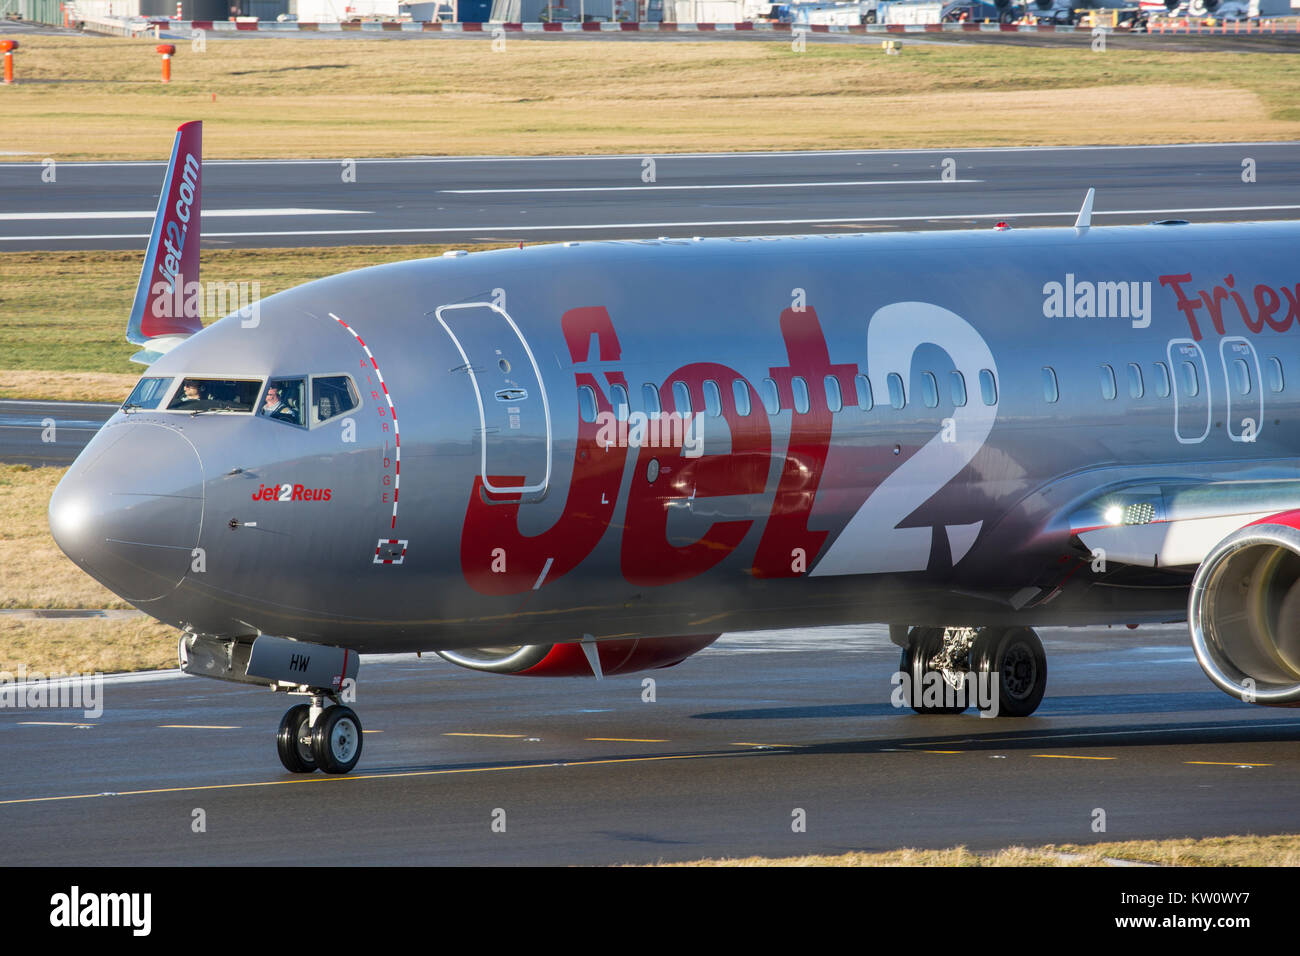 Jet2 Airways Boeing 737-800 aircraft taxying at Birmingham International Airport in England. - Stock Image